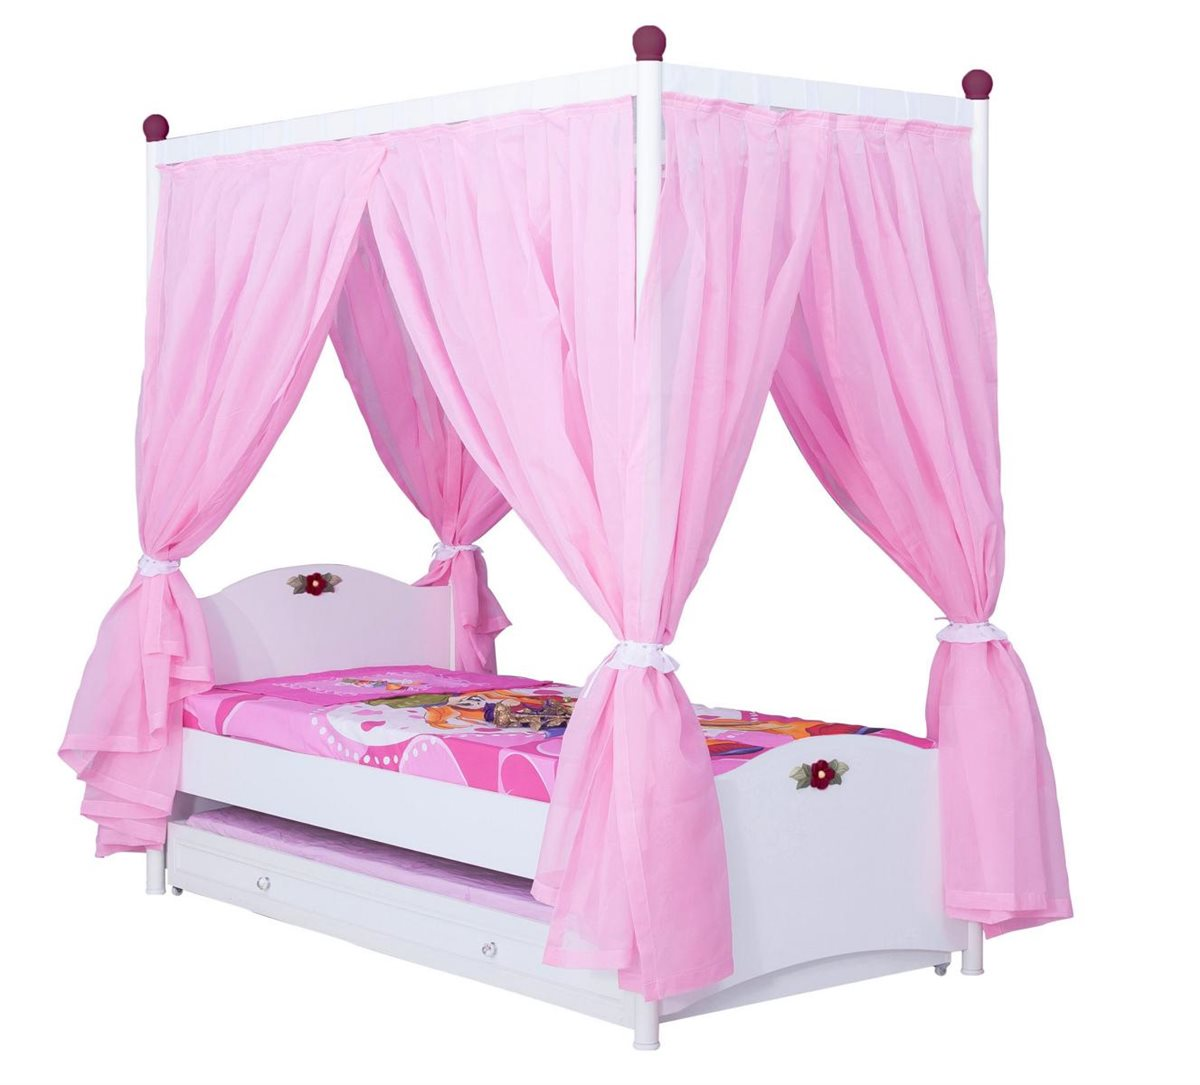 10er set kinderzimmer m bel cindy himmelbett kinderbett m dchen ebay. Black Bedroom Furniture Sets. Home Design Ideas